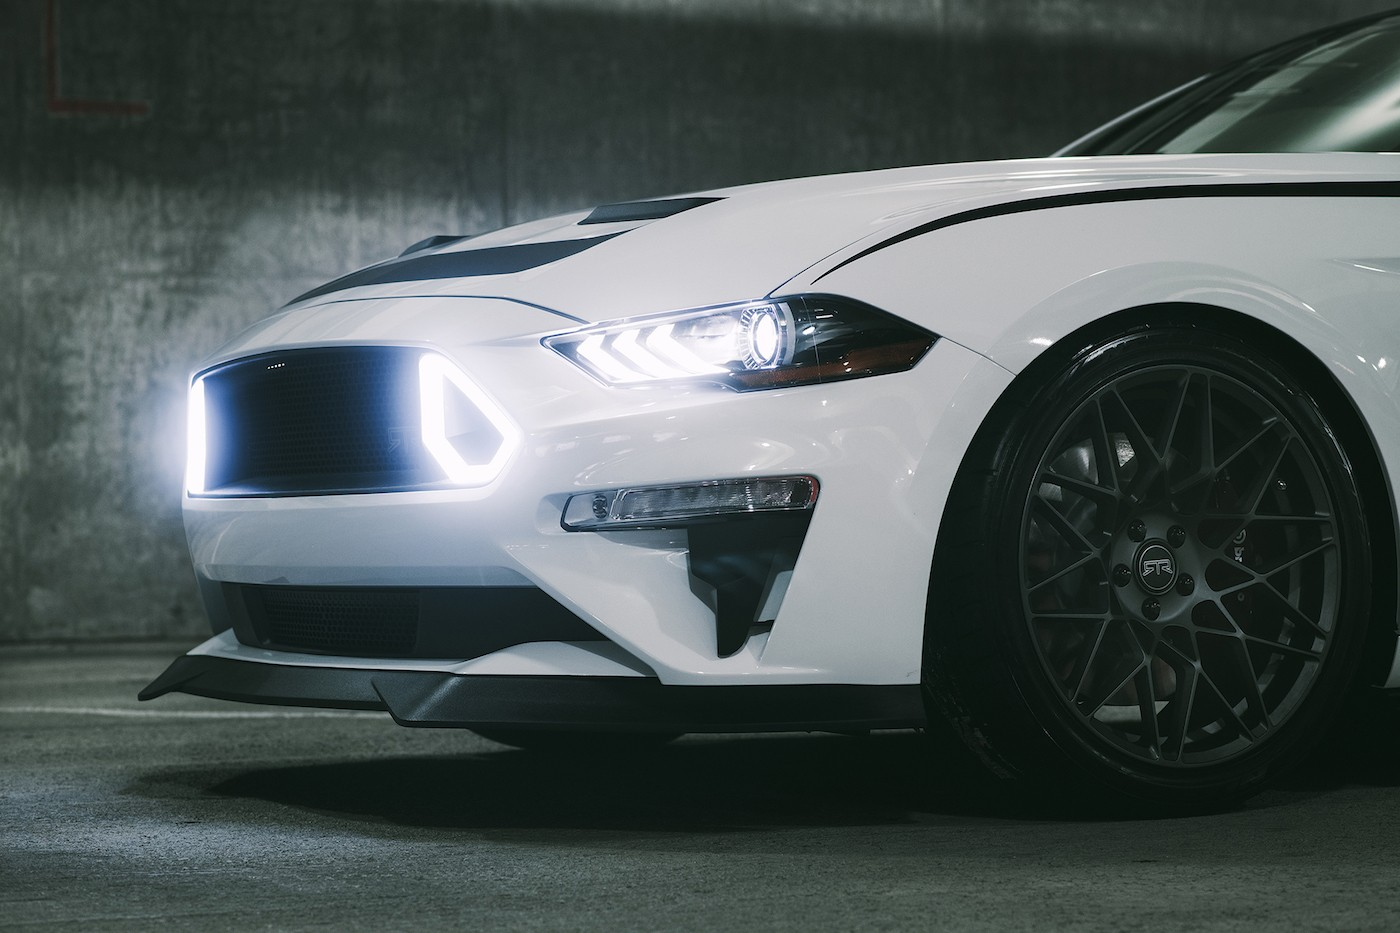 700+ HP Spec 3 2018 Mustang RTR Is Out For Dodge Challenger SRT Hellcat Blood - autoevolution